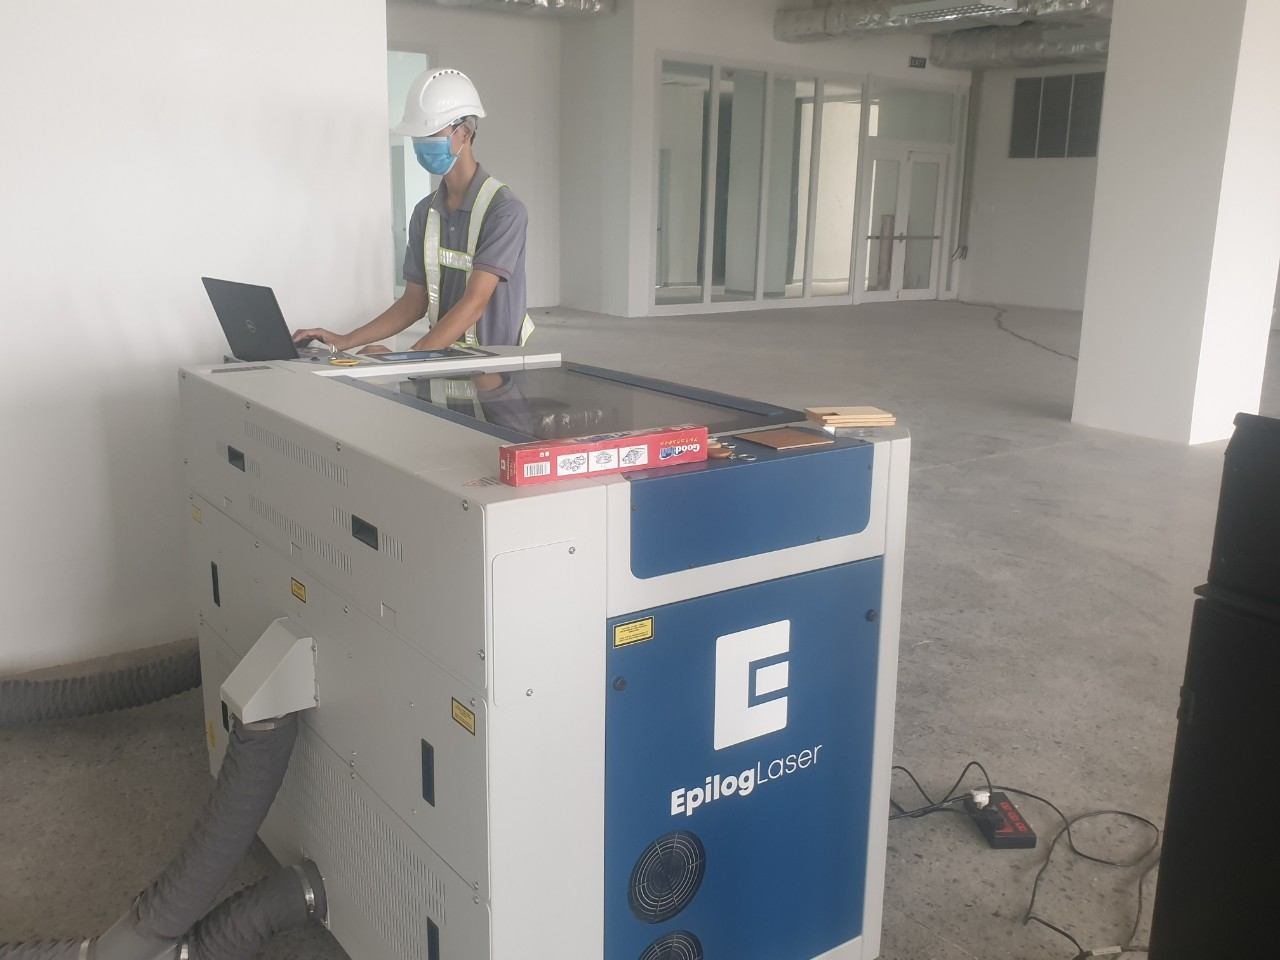 ung dung laser trong giao duc 4